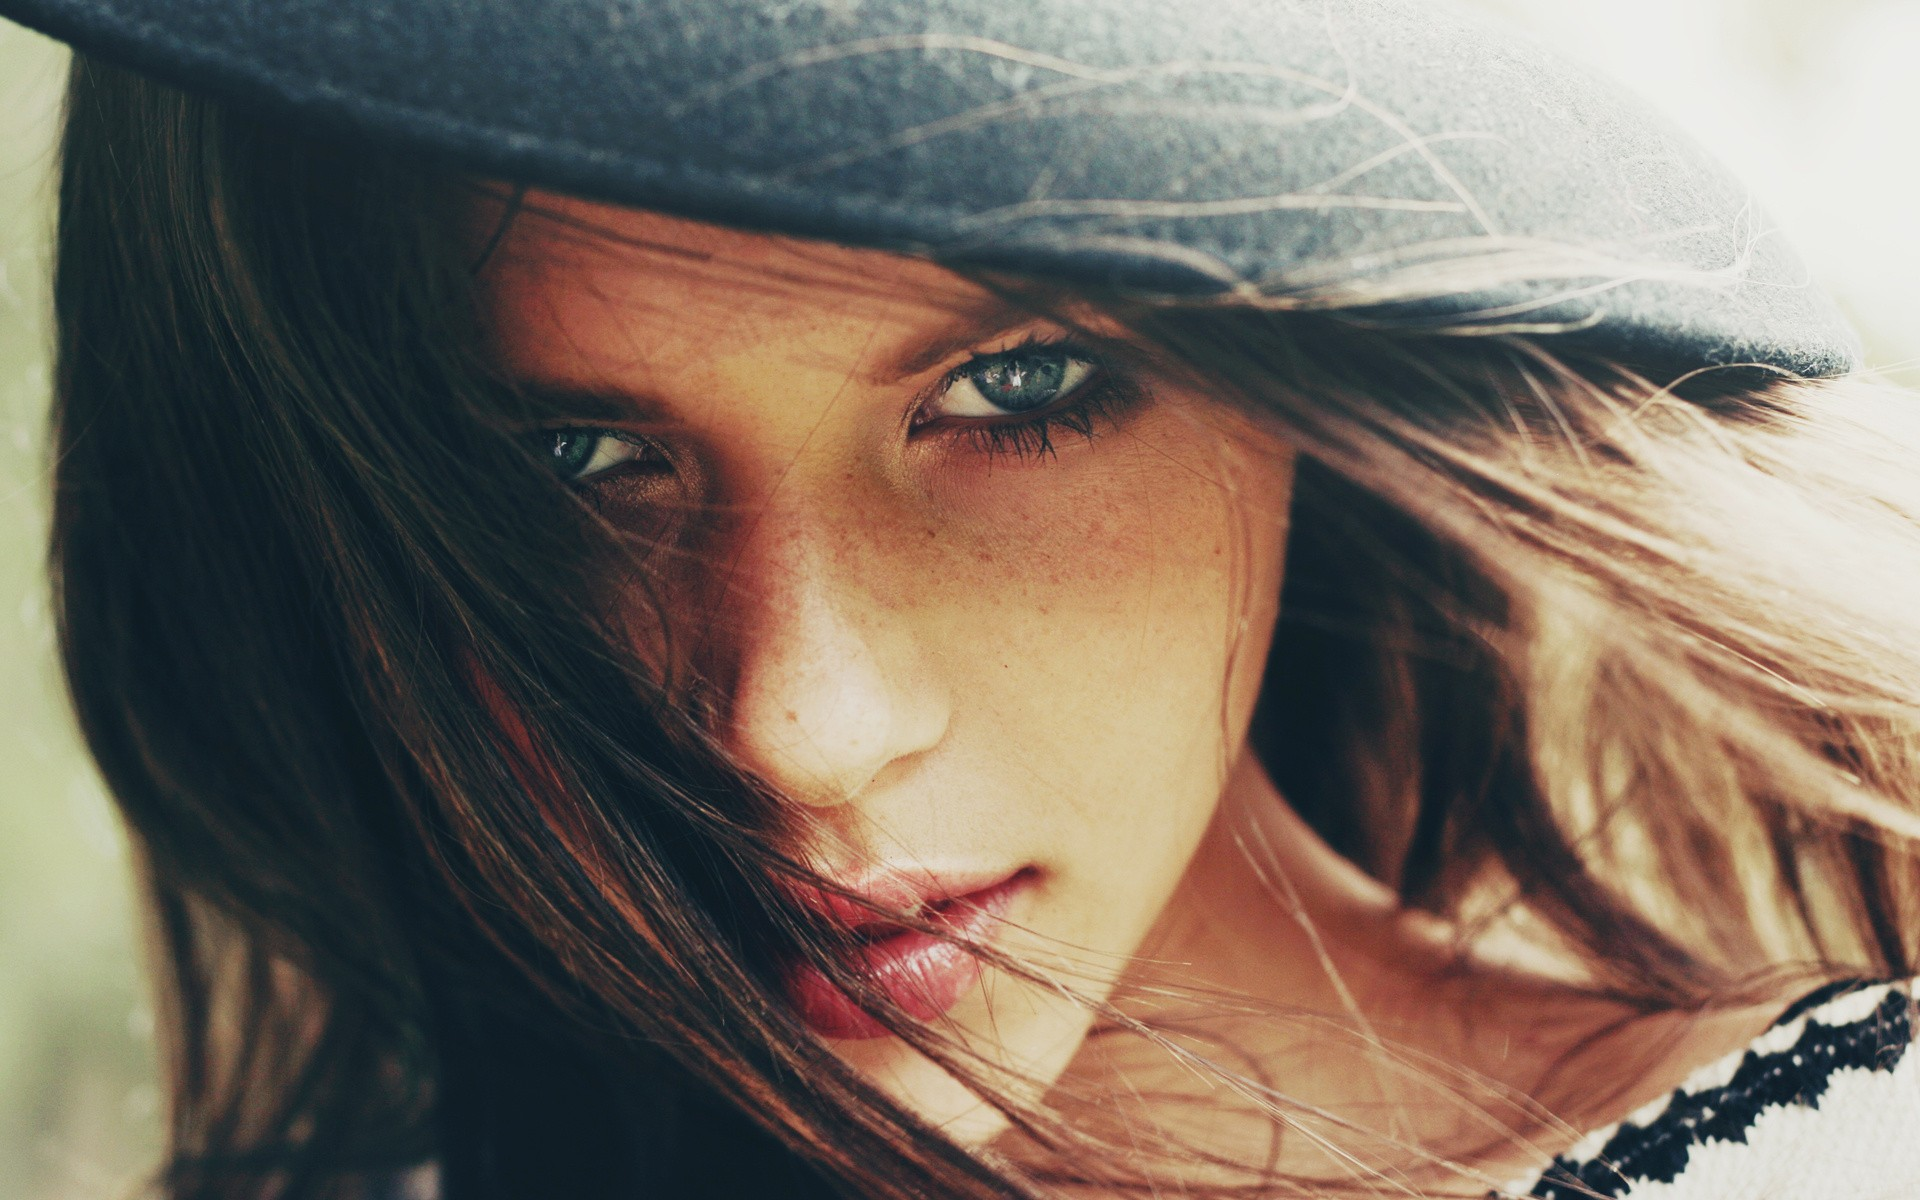 People 1920x1200 women blue eyes hat looking at viewer freckles hair in face closeup face brunette